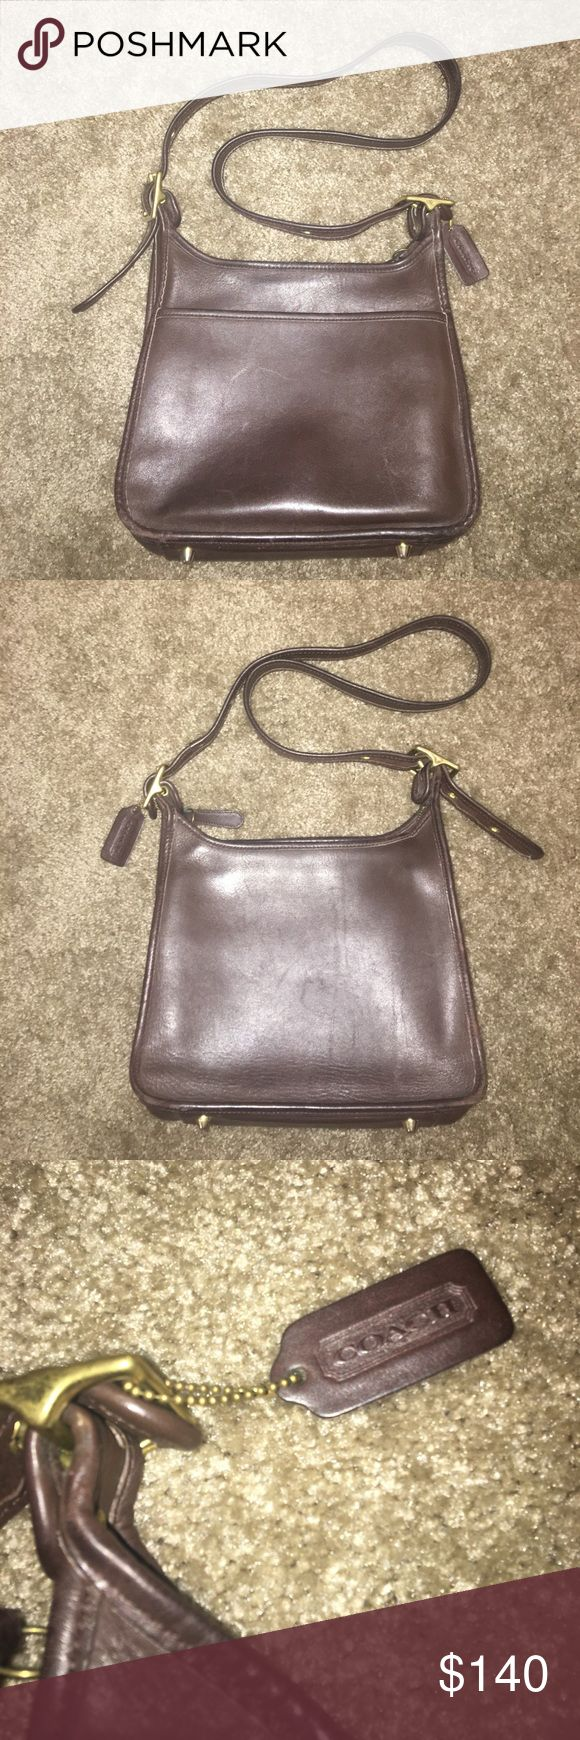 Vintage Coach Buckle Brown Leather Crossbody Purse Vintage Coach with feet.  Some minimal scratching on the leather and in great condition.  Inside zipper and outer pocket.  Small stain on back, see last pic.  9 H X 10.5 L X 4 W. Coach Bags Crossbody Bags